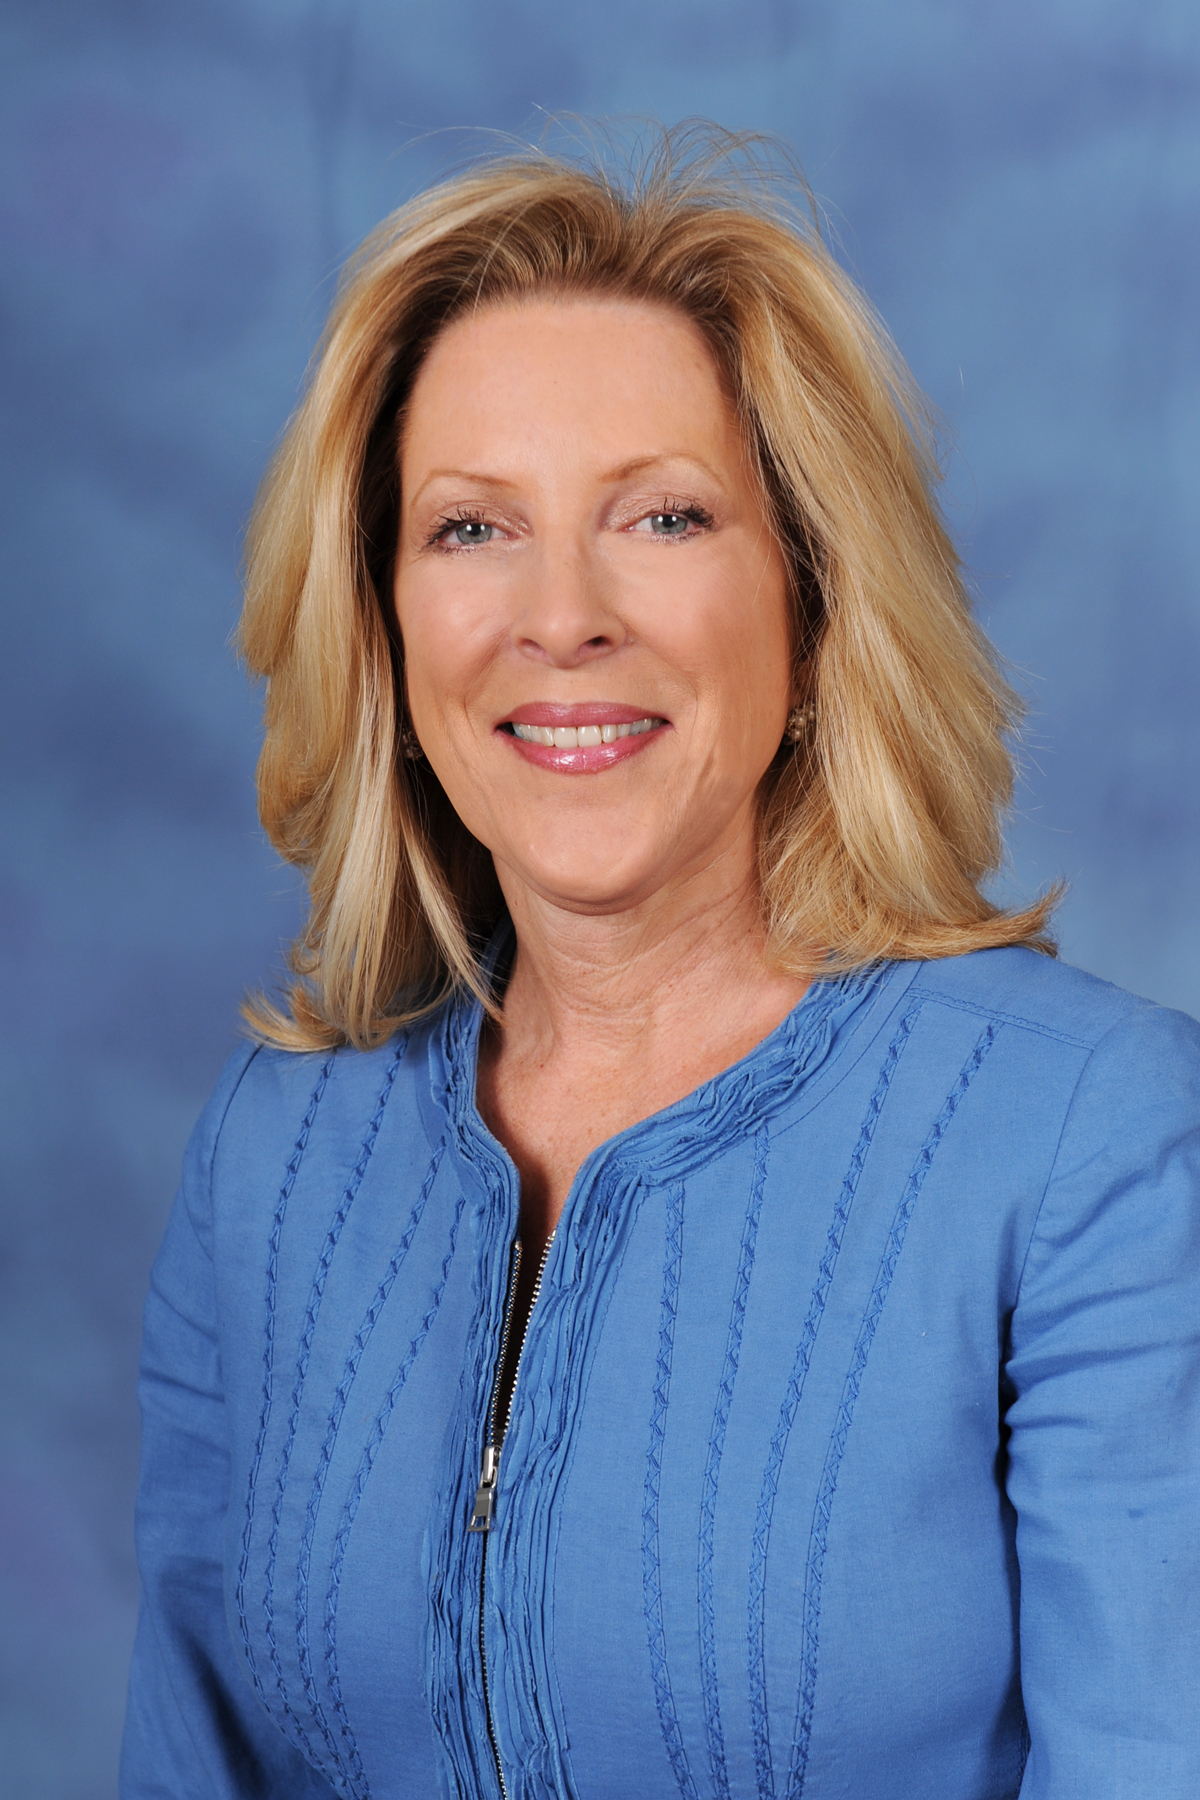 Deb Aldredge, chief administrative officer of Farmers Insurance